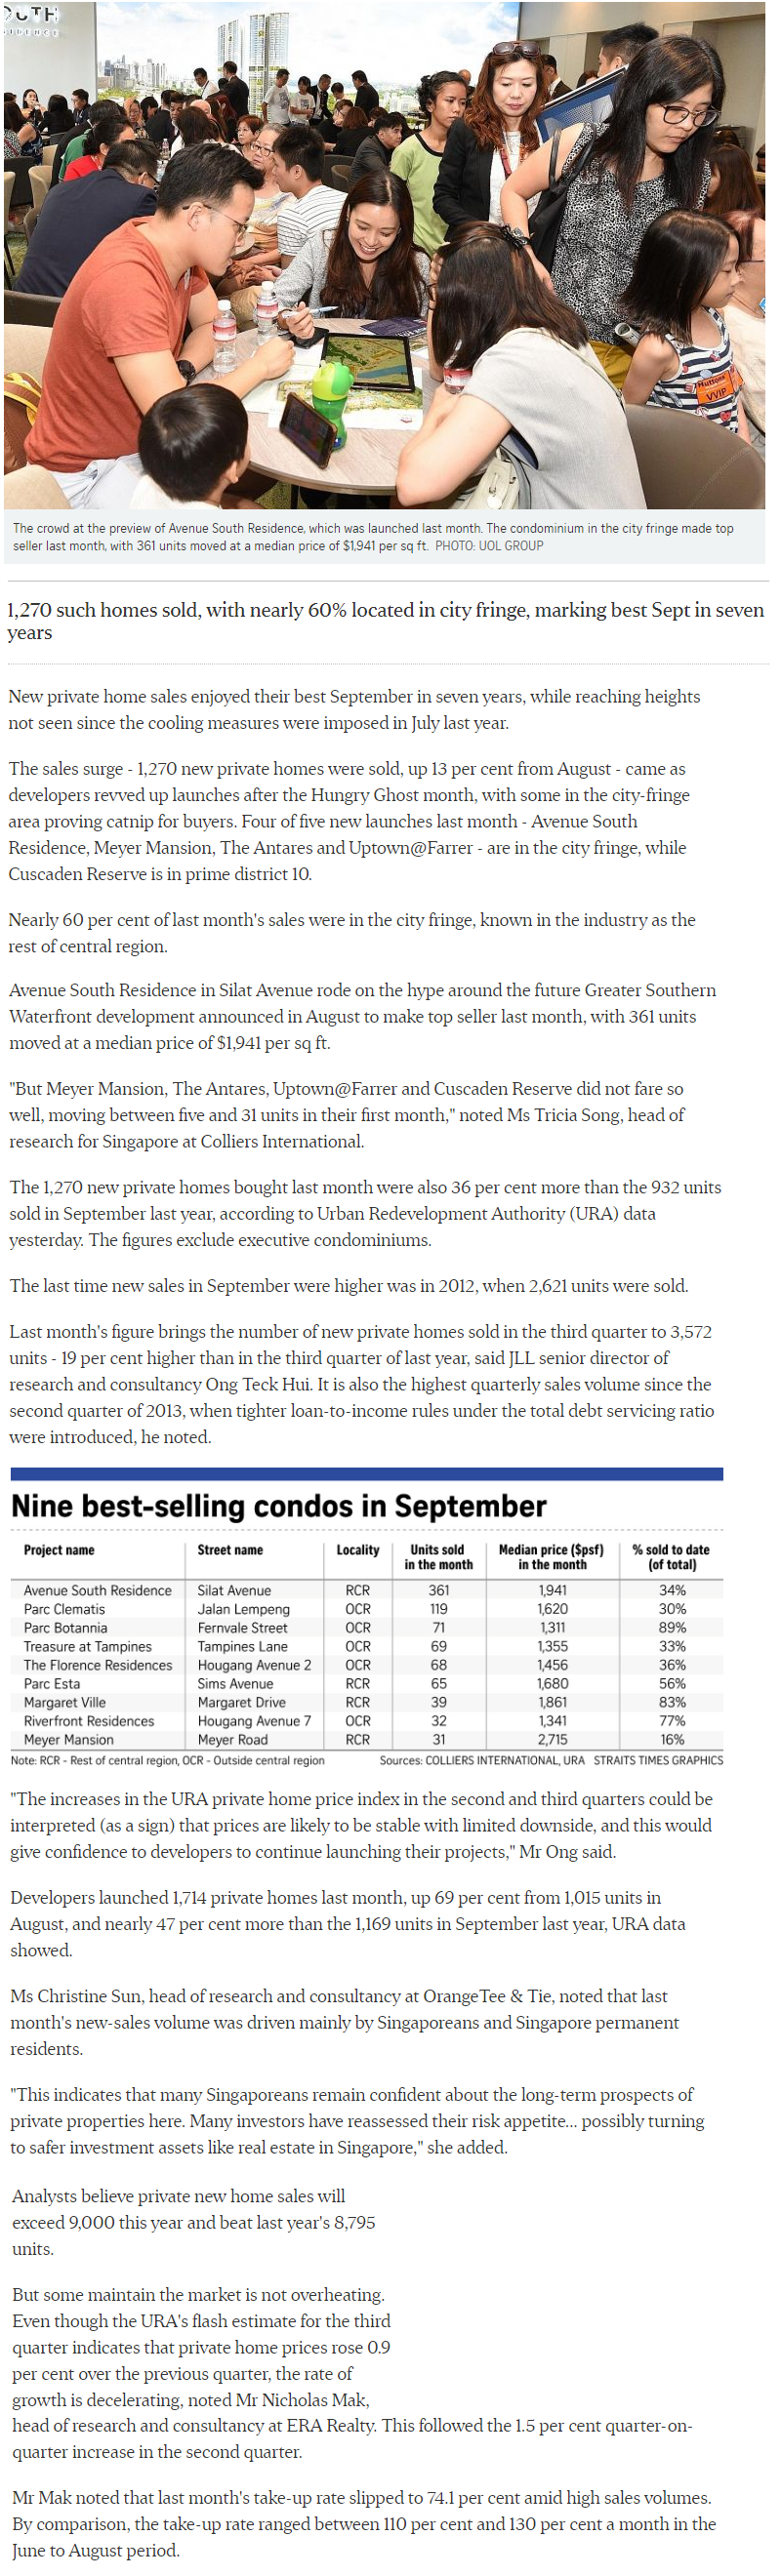 Pollen Collection - New private Home Sales Hit A Hight In September